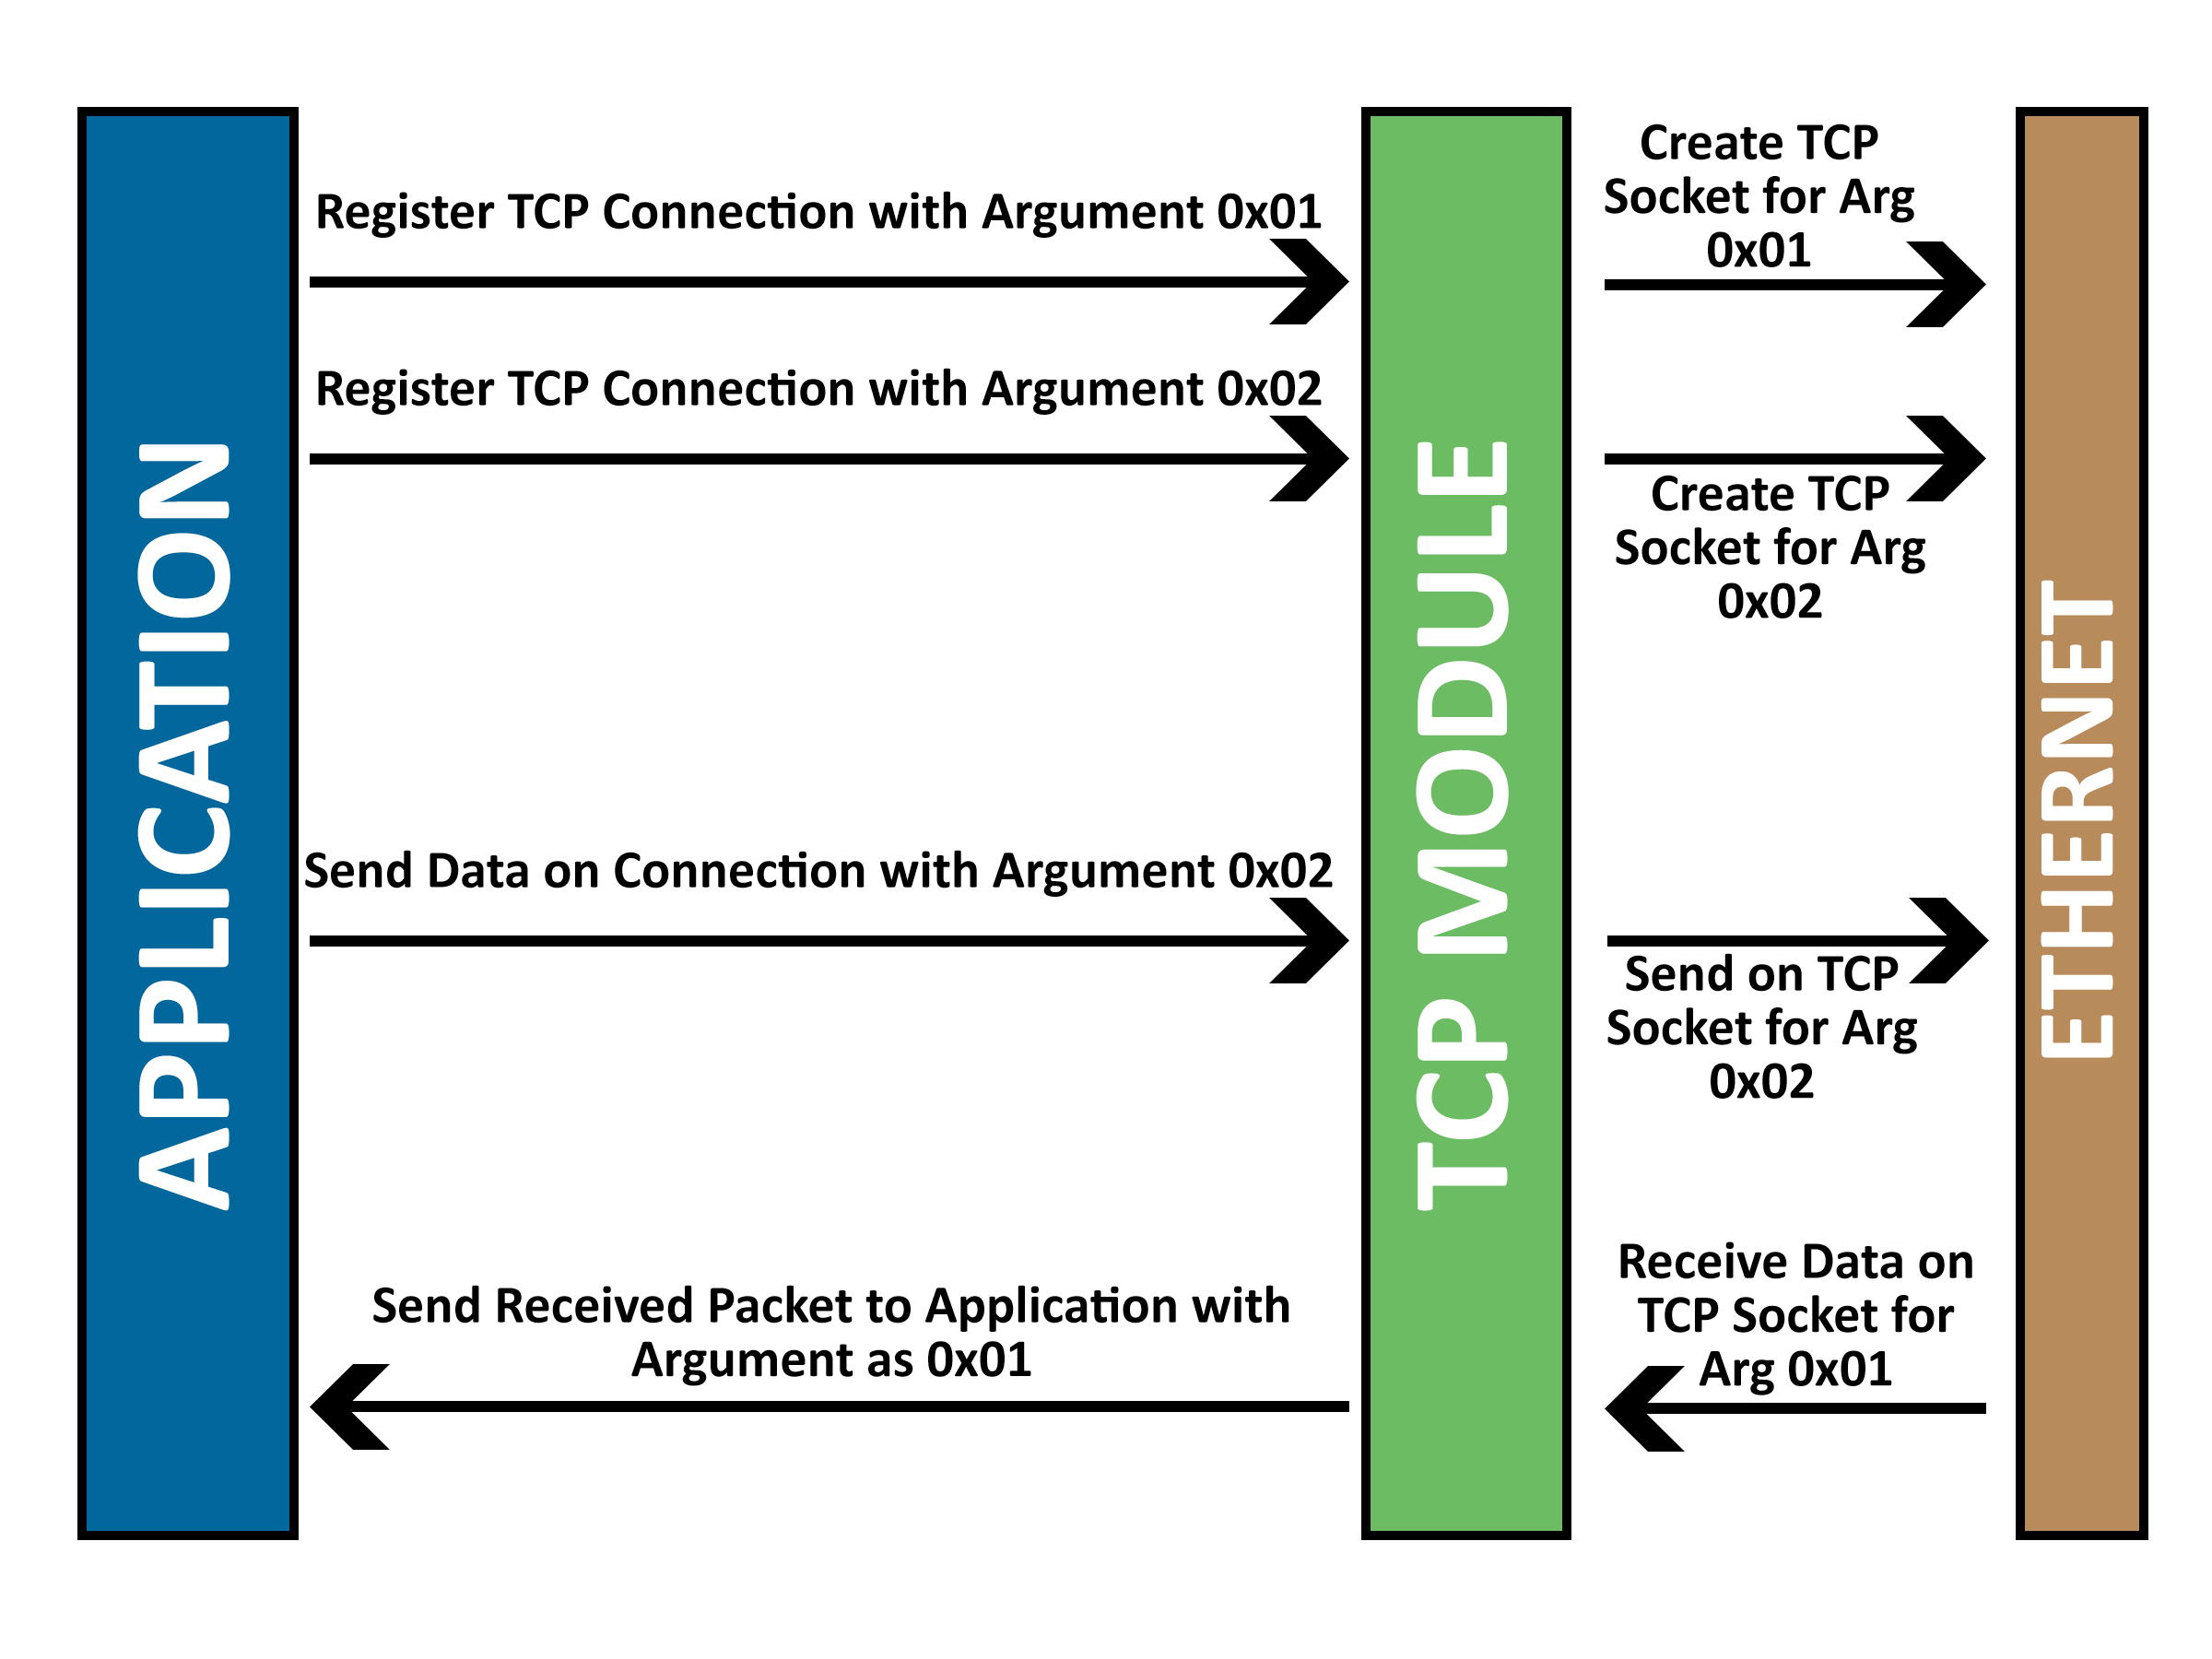 Sequence diagram in figure 1